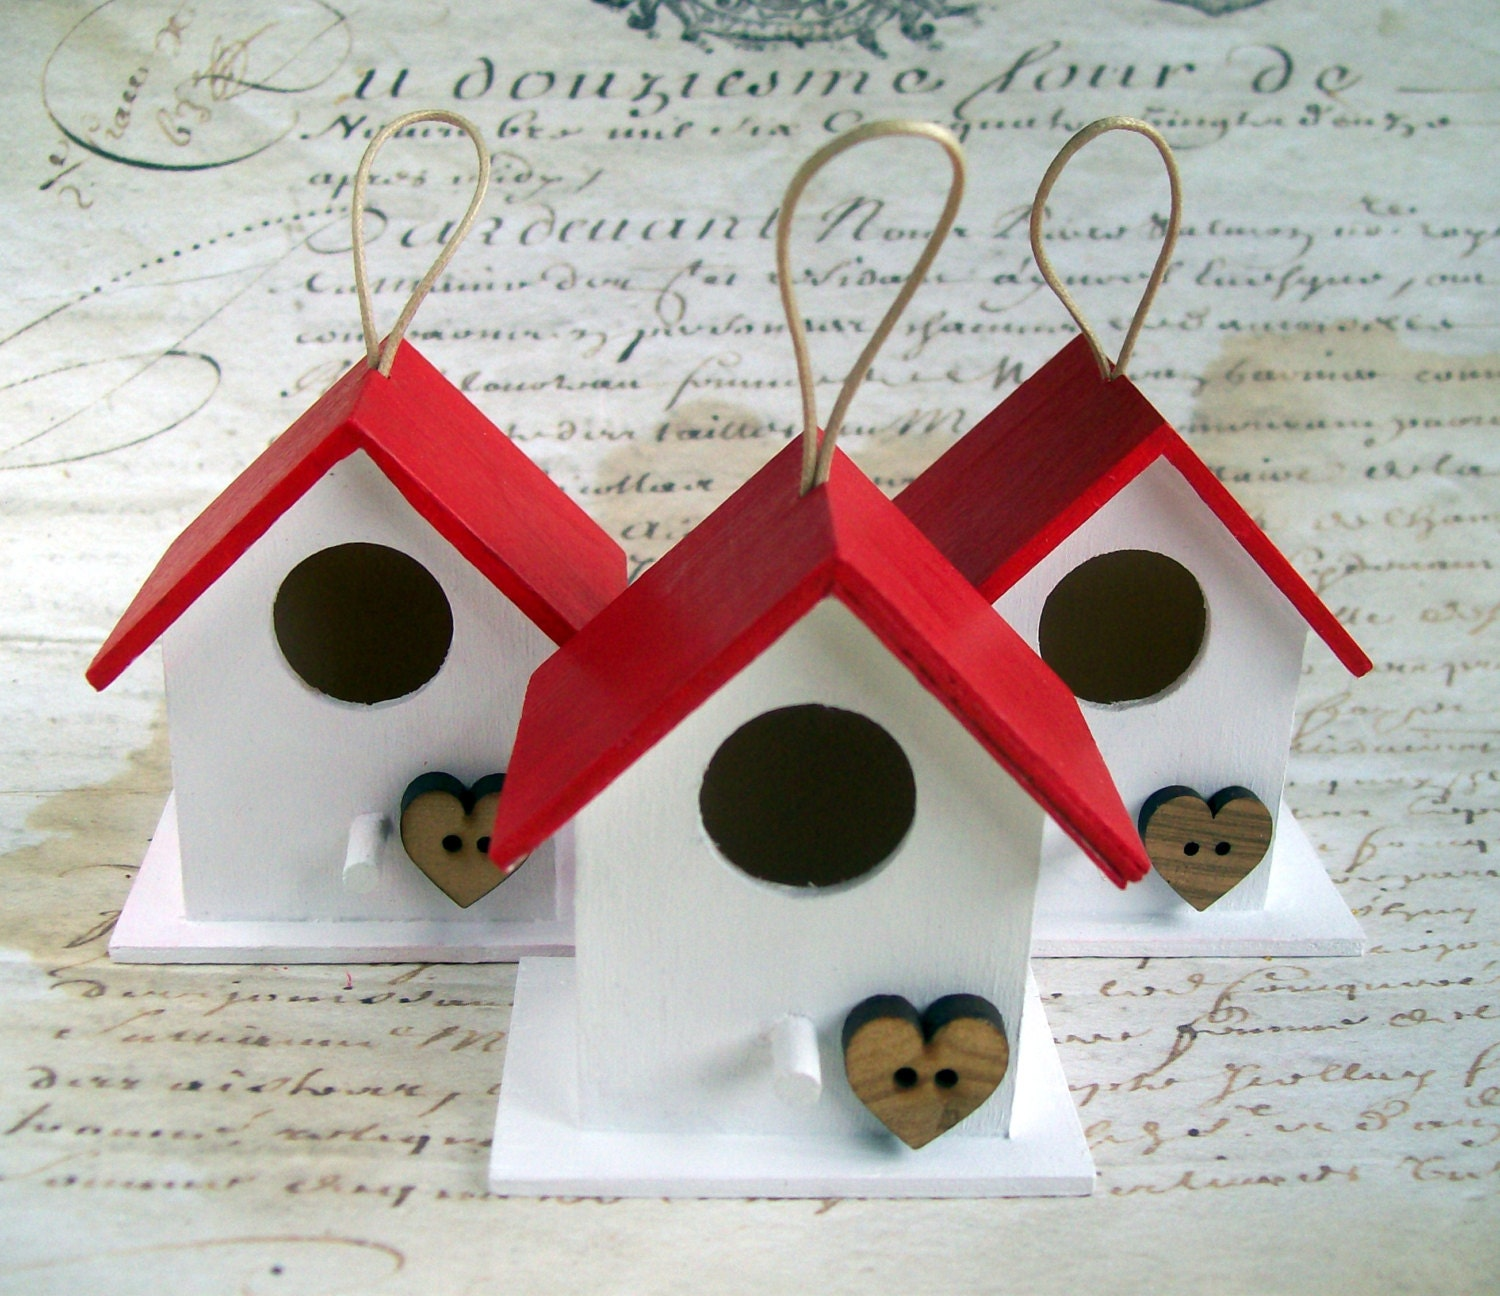 Rustic Christmas birdhouse decorations/ornaments wood red / white heart button - artangel